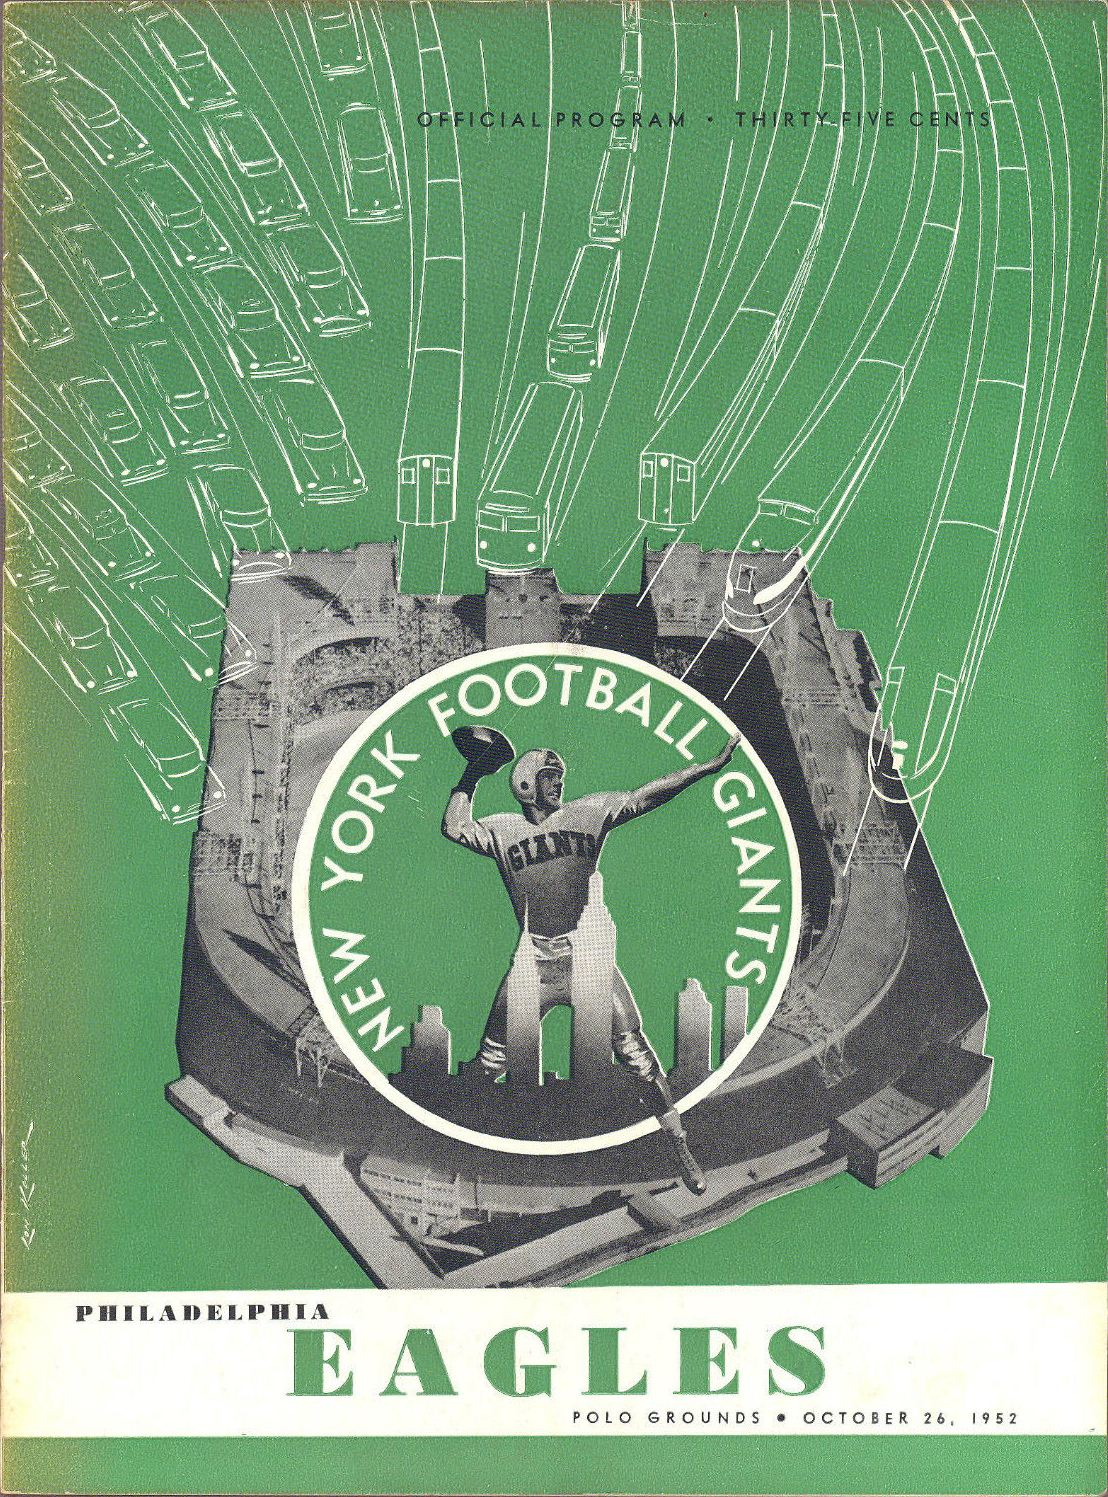 New York Giants - Philadelphia Eagles Game Program (October 26, 1952)